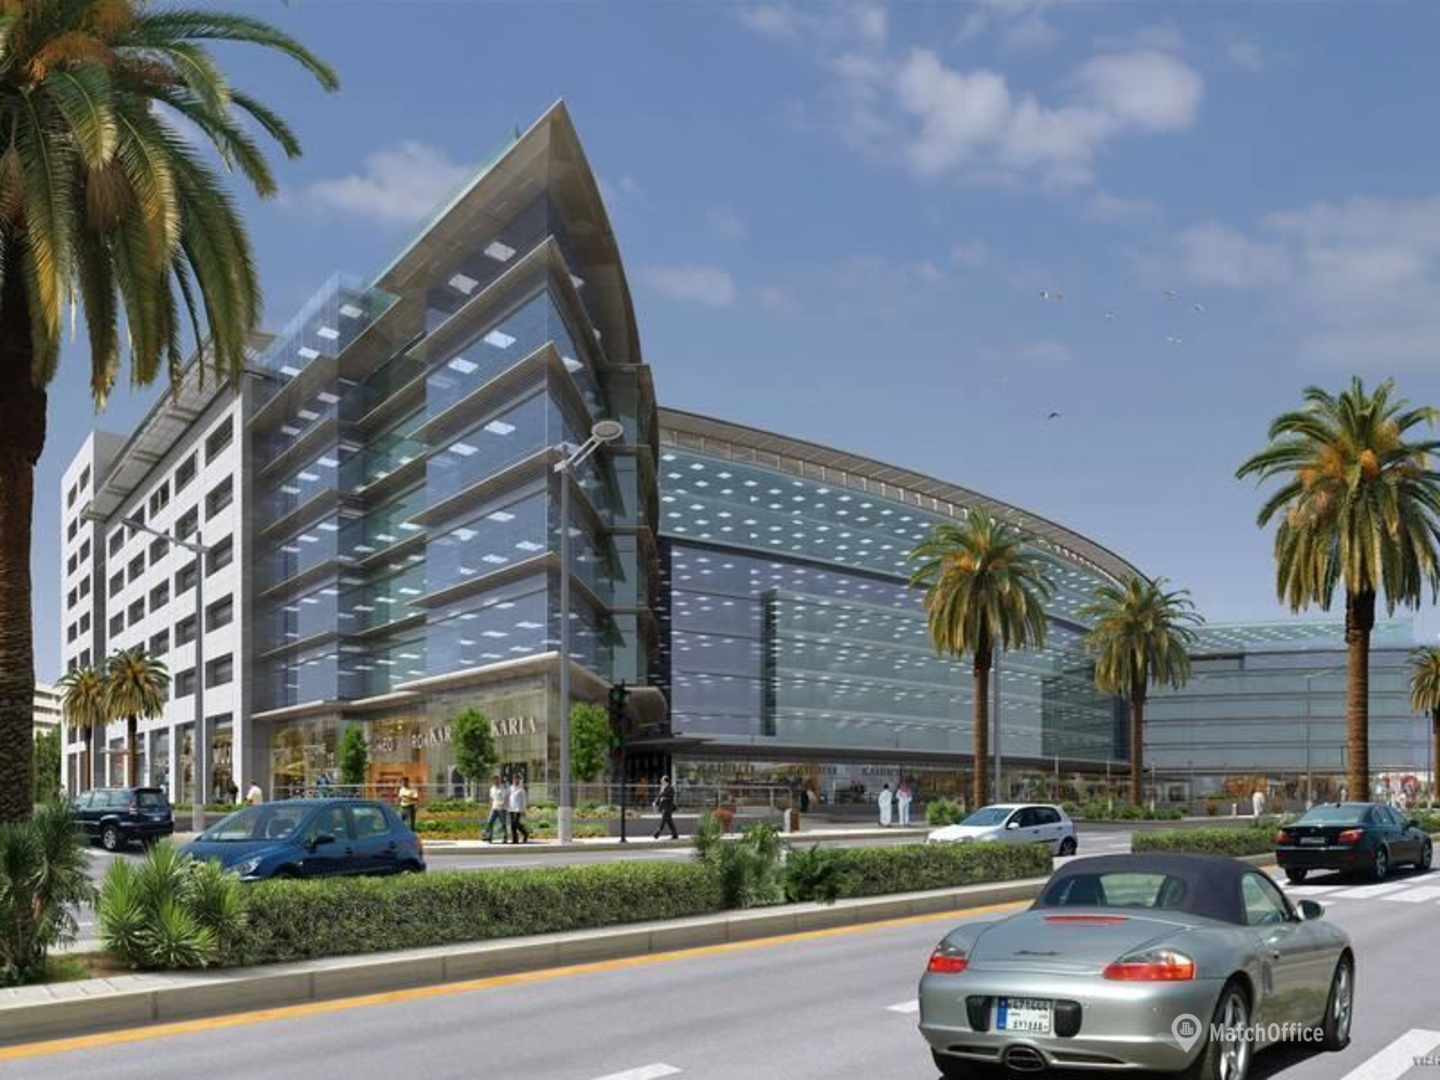 Business Parks For Lease In Riyadh Matchoffice